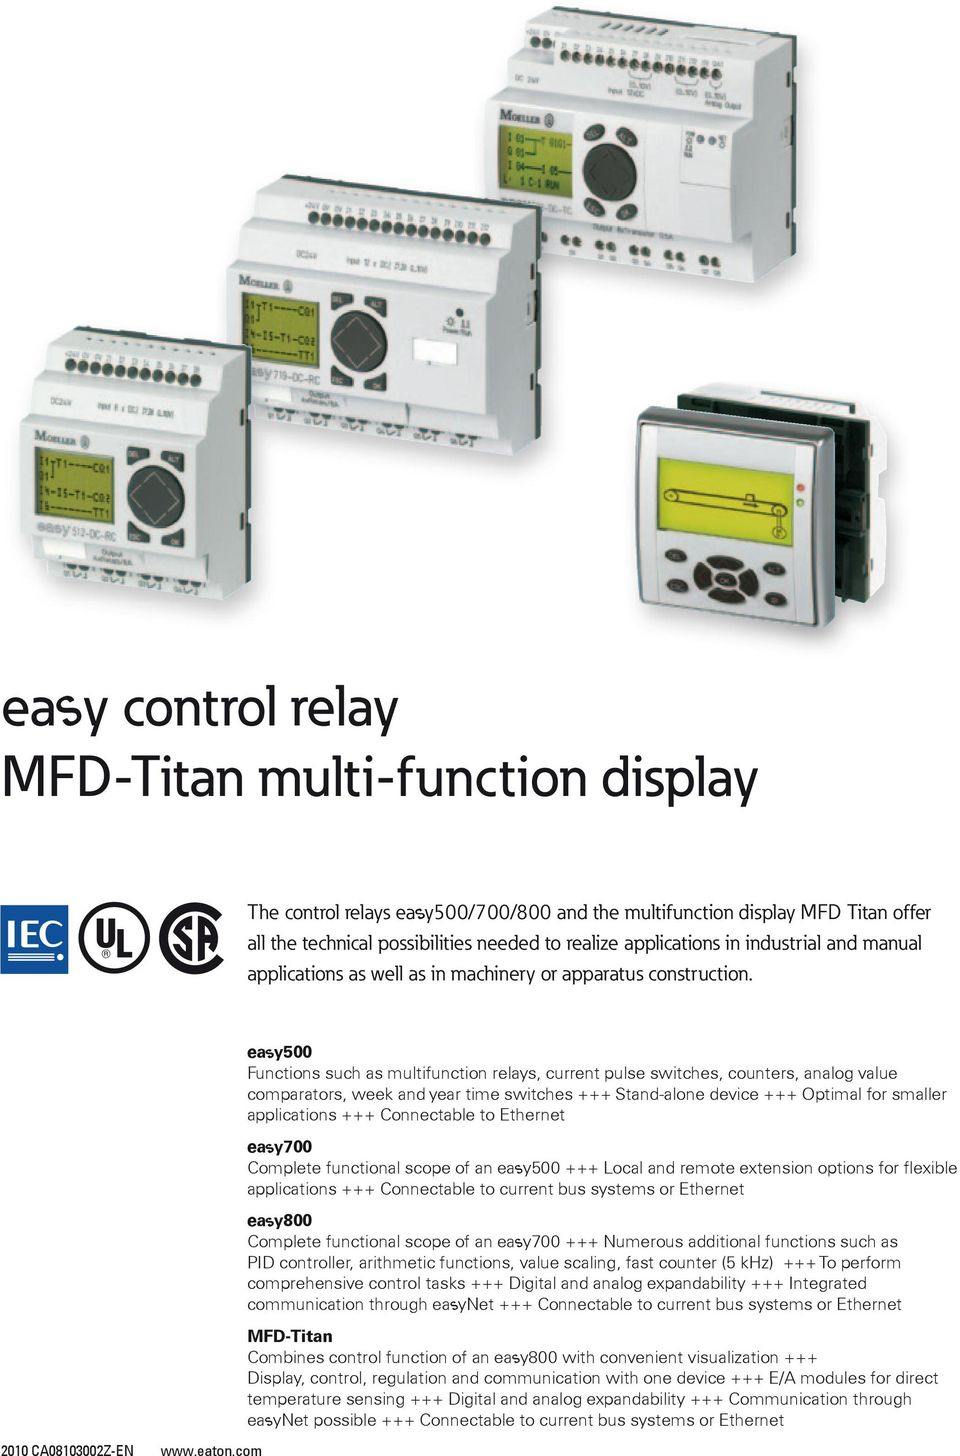 ea y500 Functions such as multifunction relays, current pulse switches, counters, analog value comparators, week and year time switches +++ Stand-alone device +++ Optimal for smaller applications +++